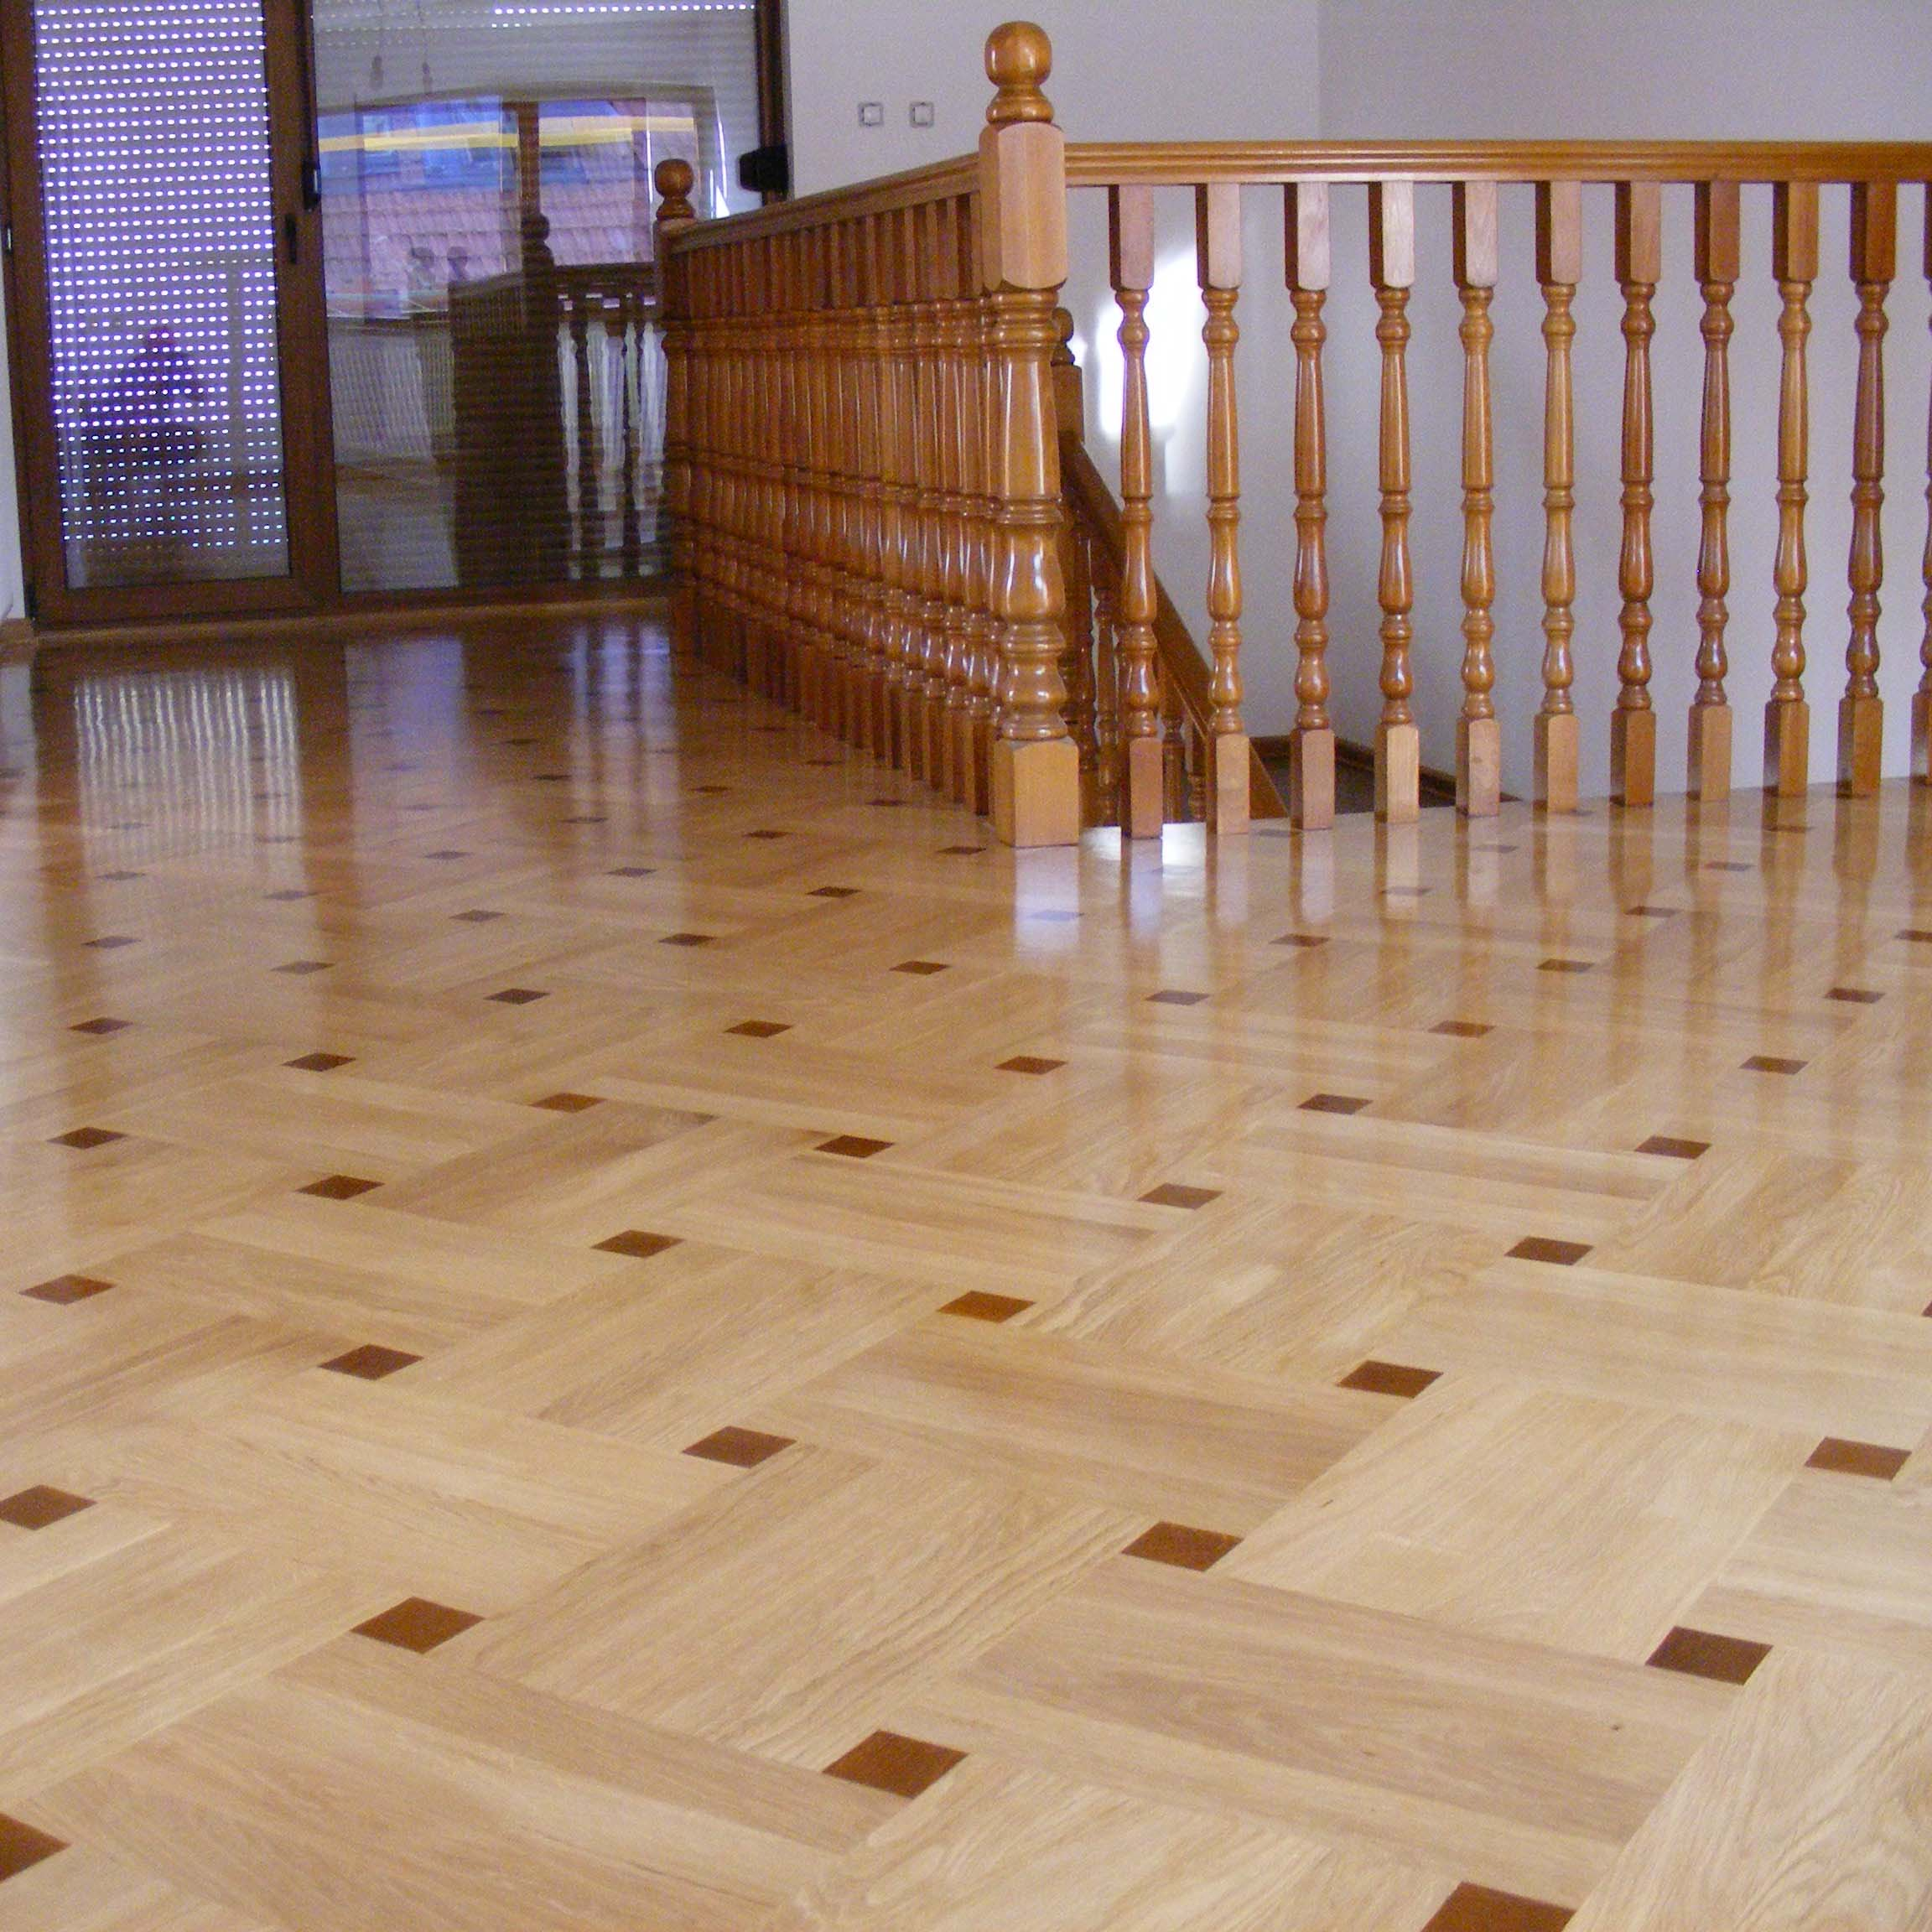 1.Classic oak floor with buttons